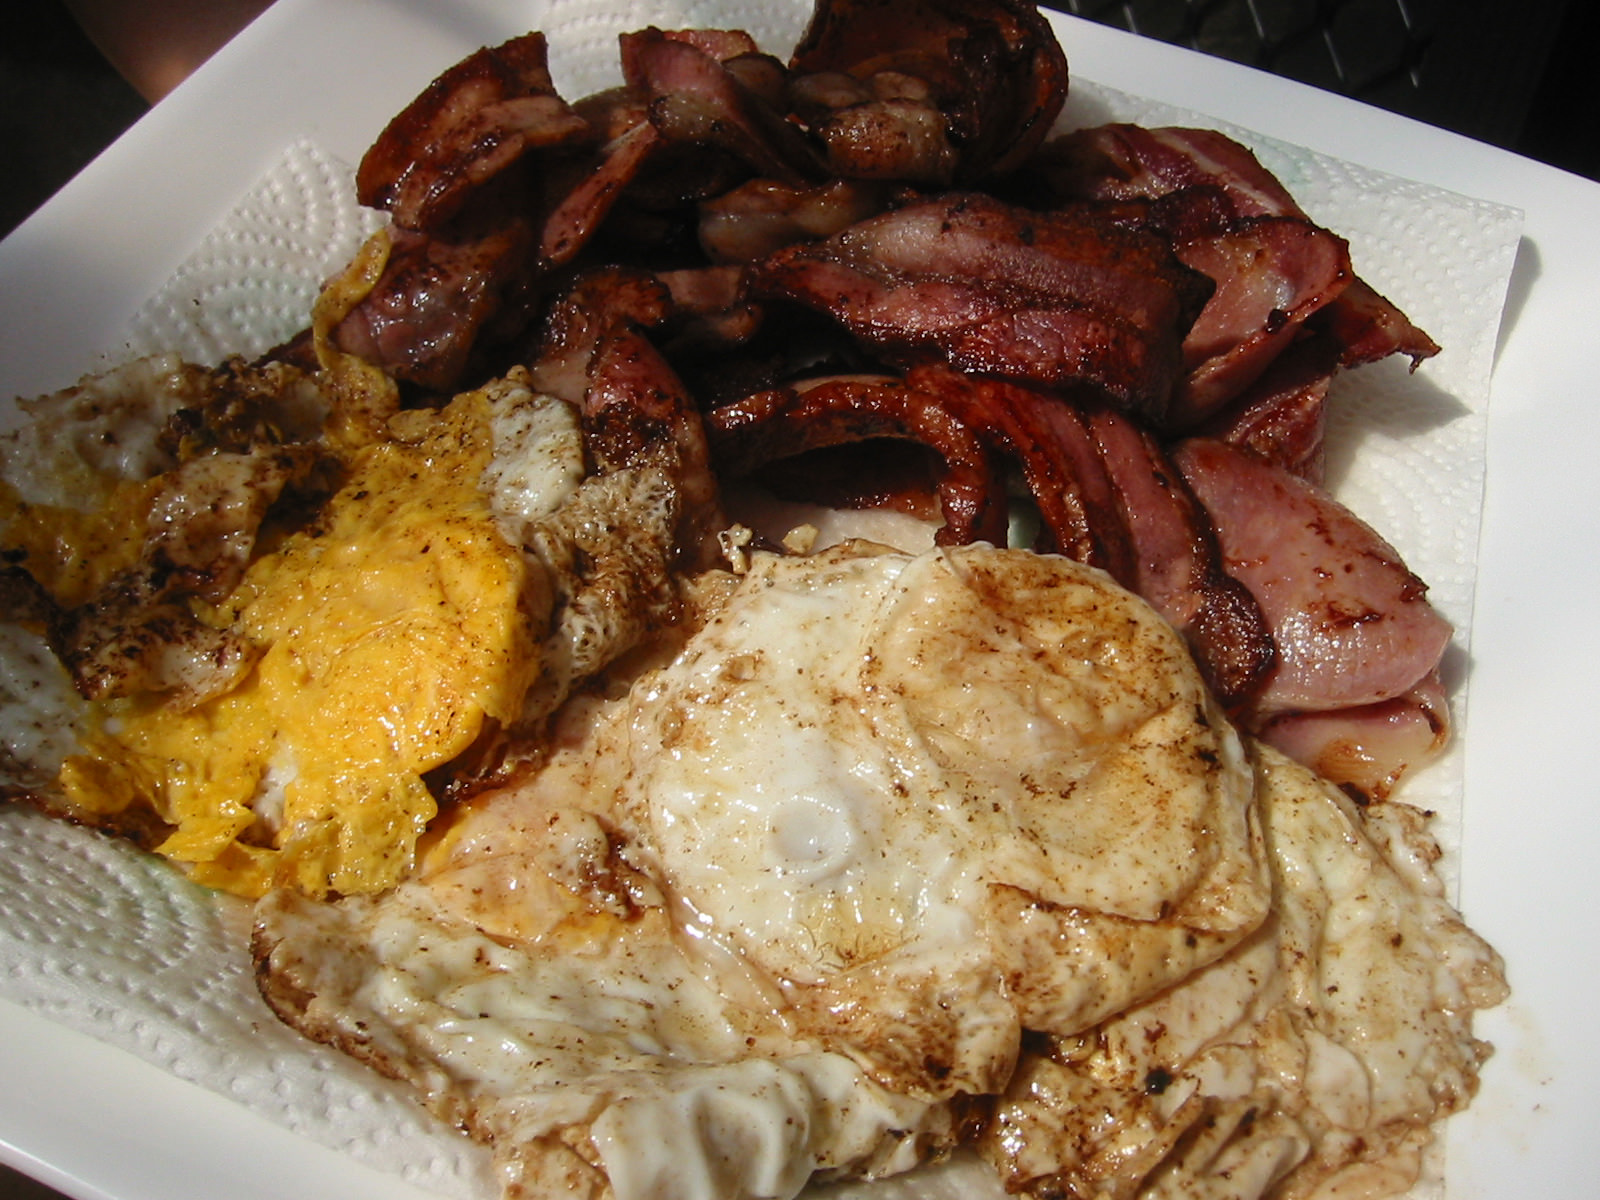 Platter of bacon and eggs